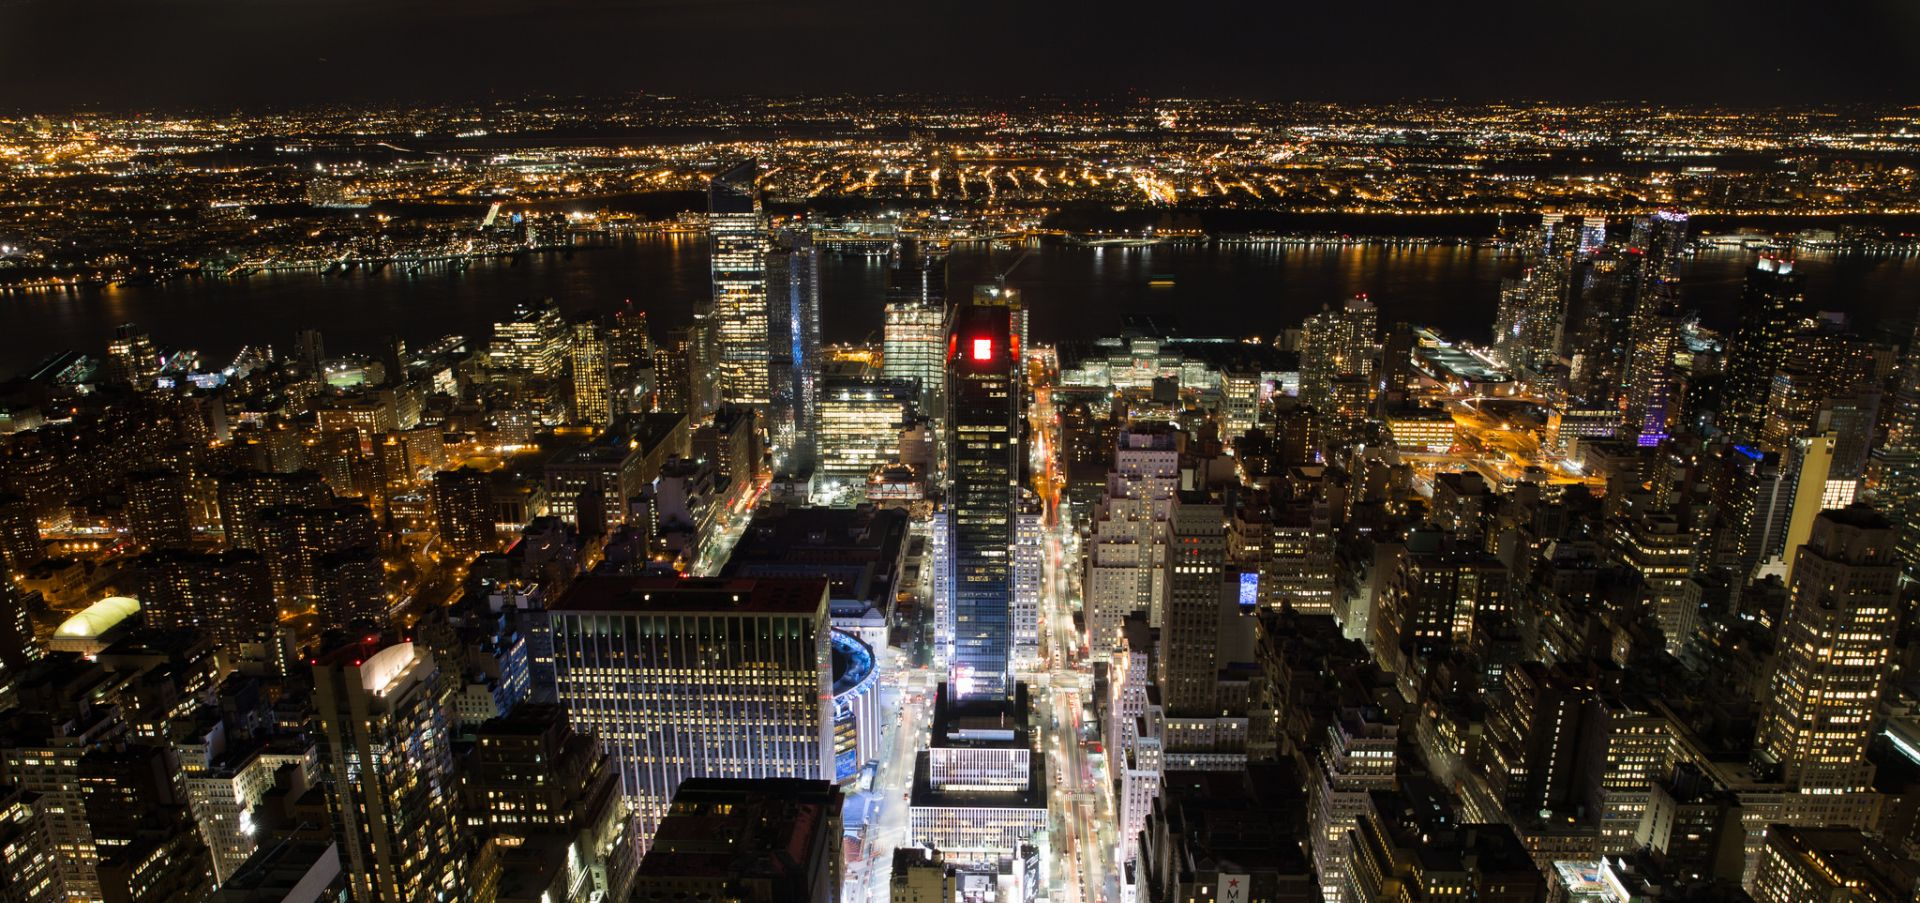 city lights of new york seen from above